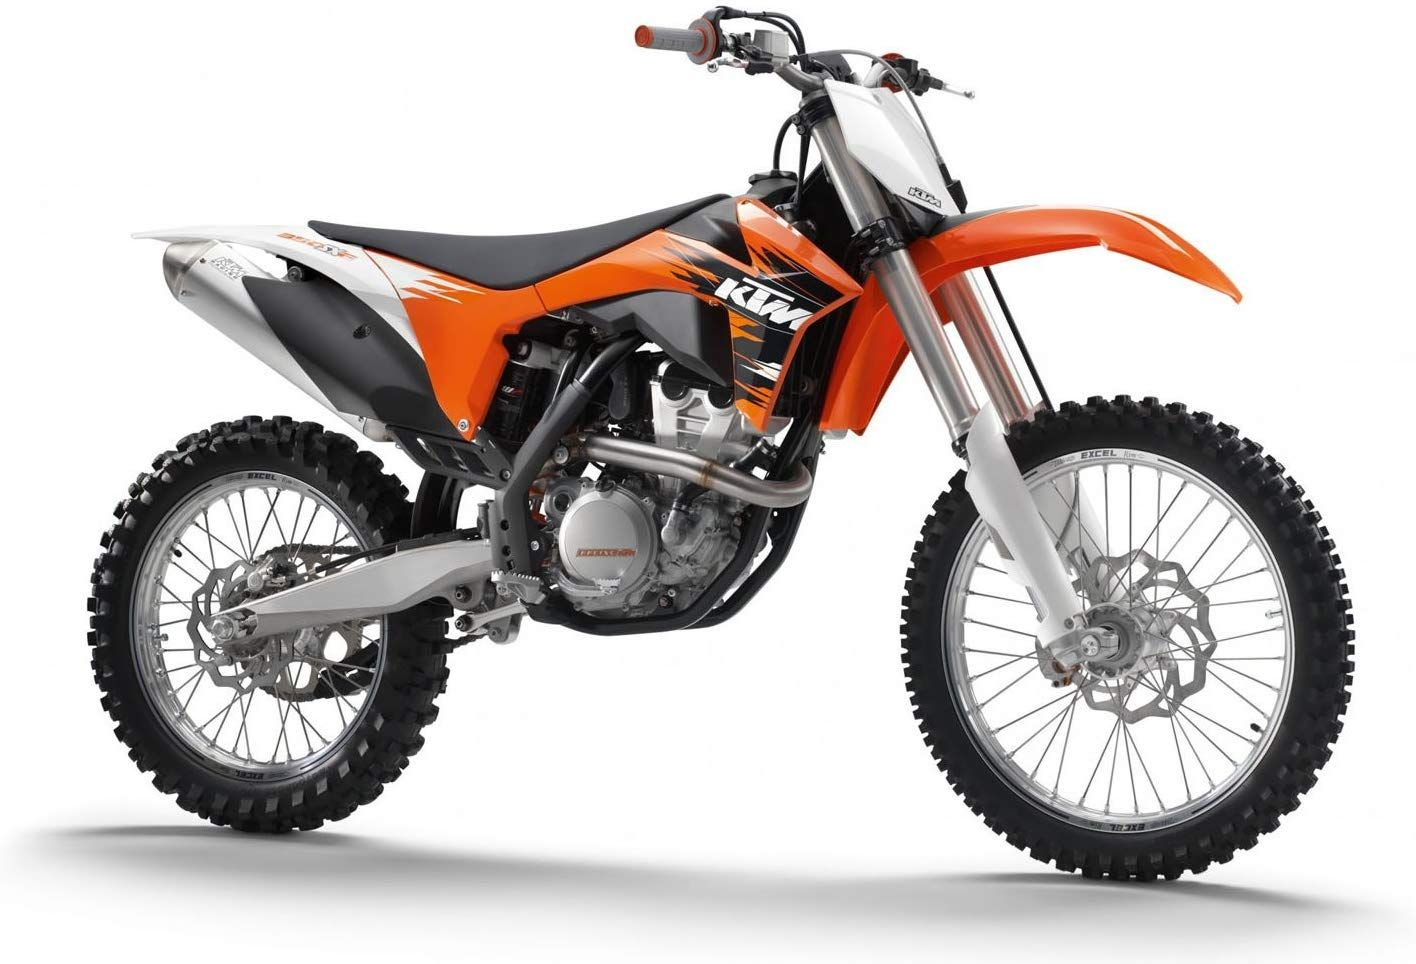 Pin By The Dirt Bike Review On The Dirt Bike Review Blog Post In 2020 Ktm Dirt Bikes Ktm Dirt Bikes For Sale